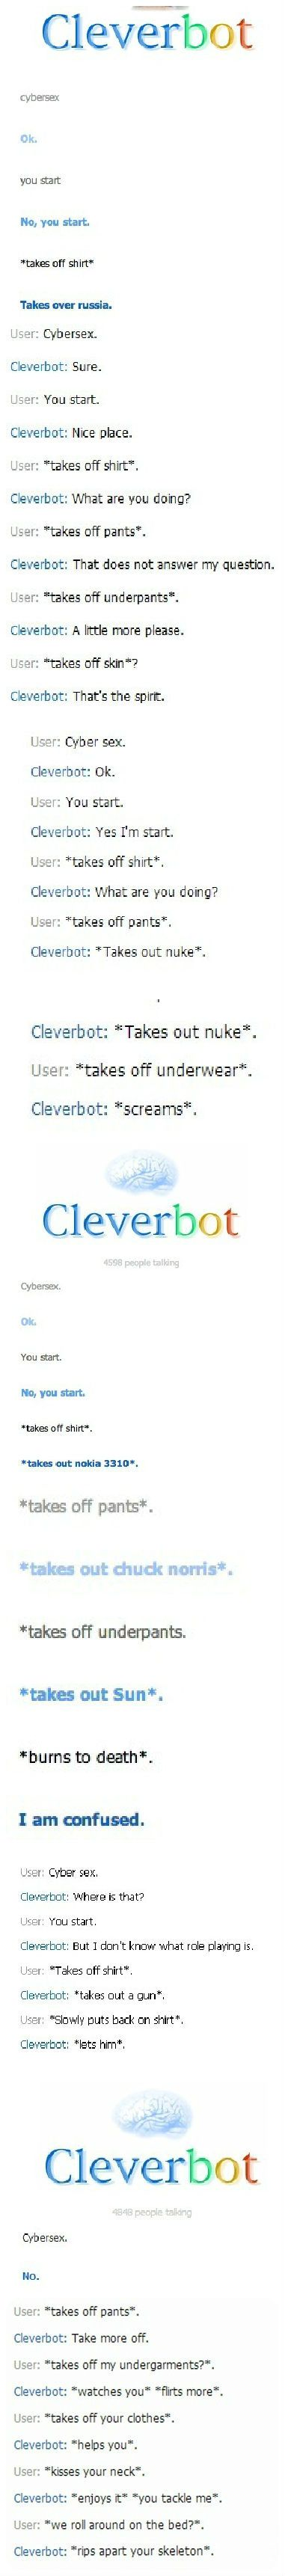 Cleverbot cybersex Go fuck yourself with a flagpole. Clev: *tickles myself with a feather* *giggles and laughs* | *takes out whip and chains* you want to play 60 shades of grey? Clev: *slices at you with sword* #cleverbot